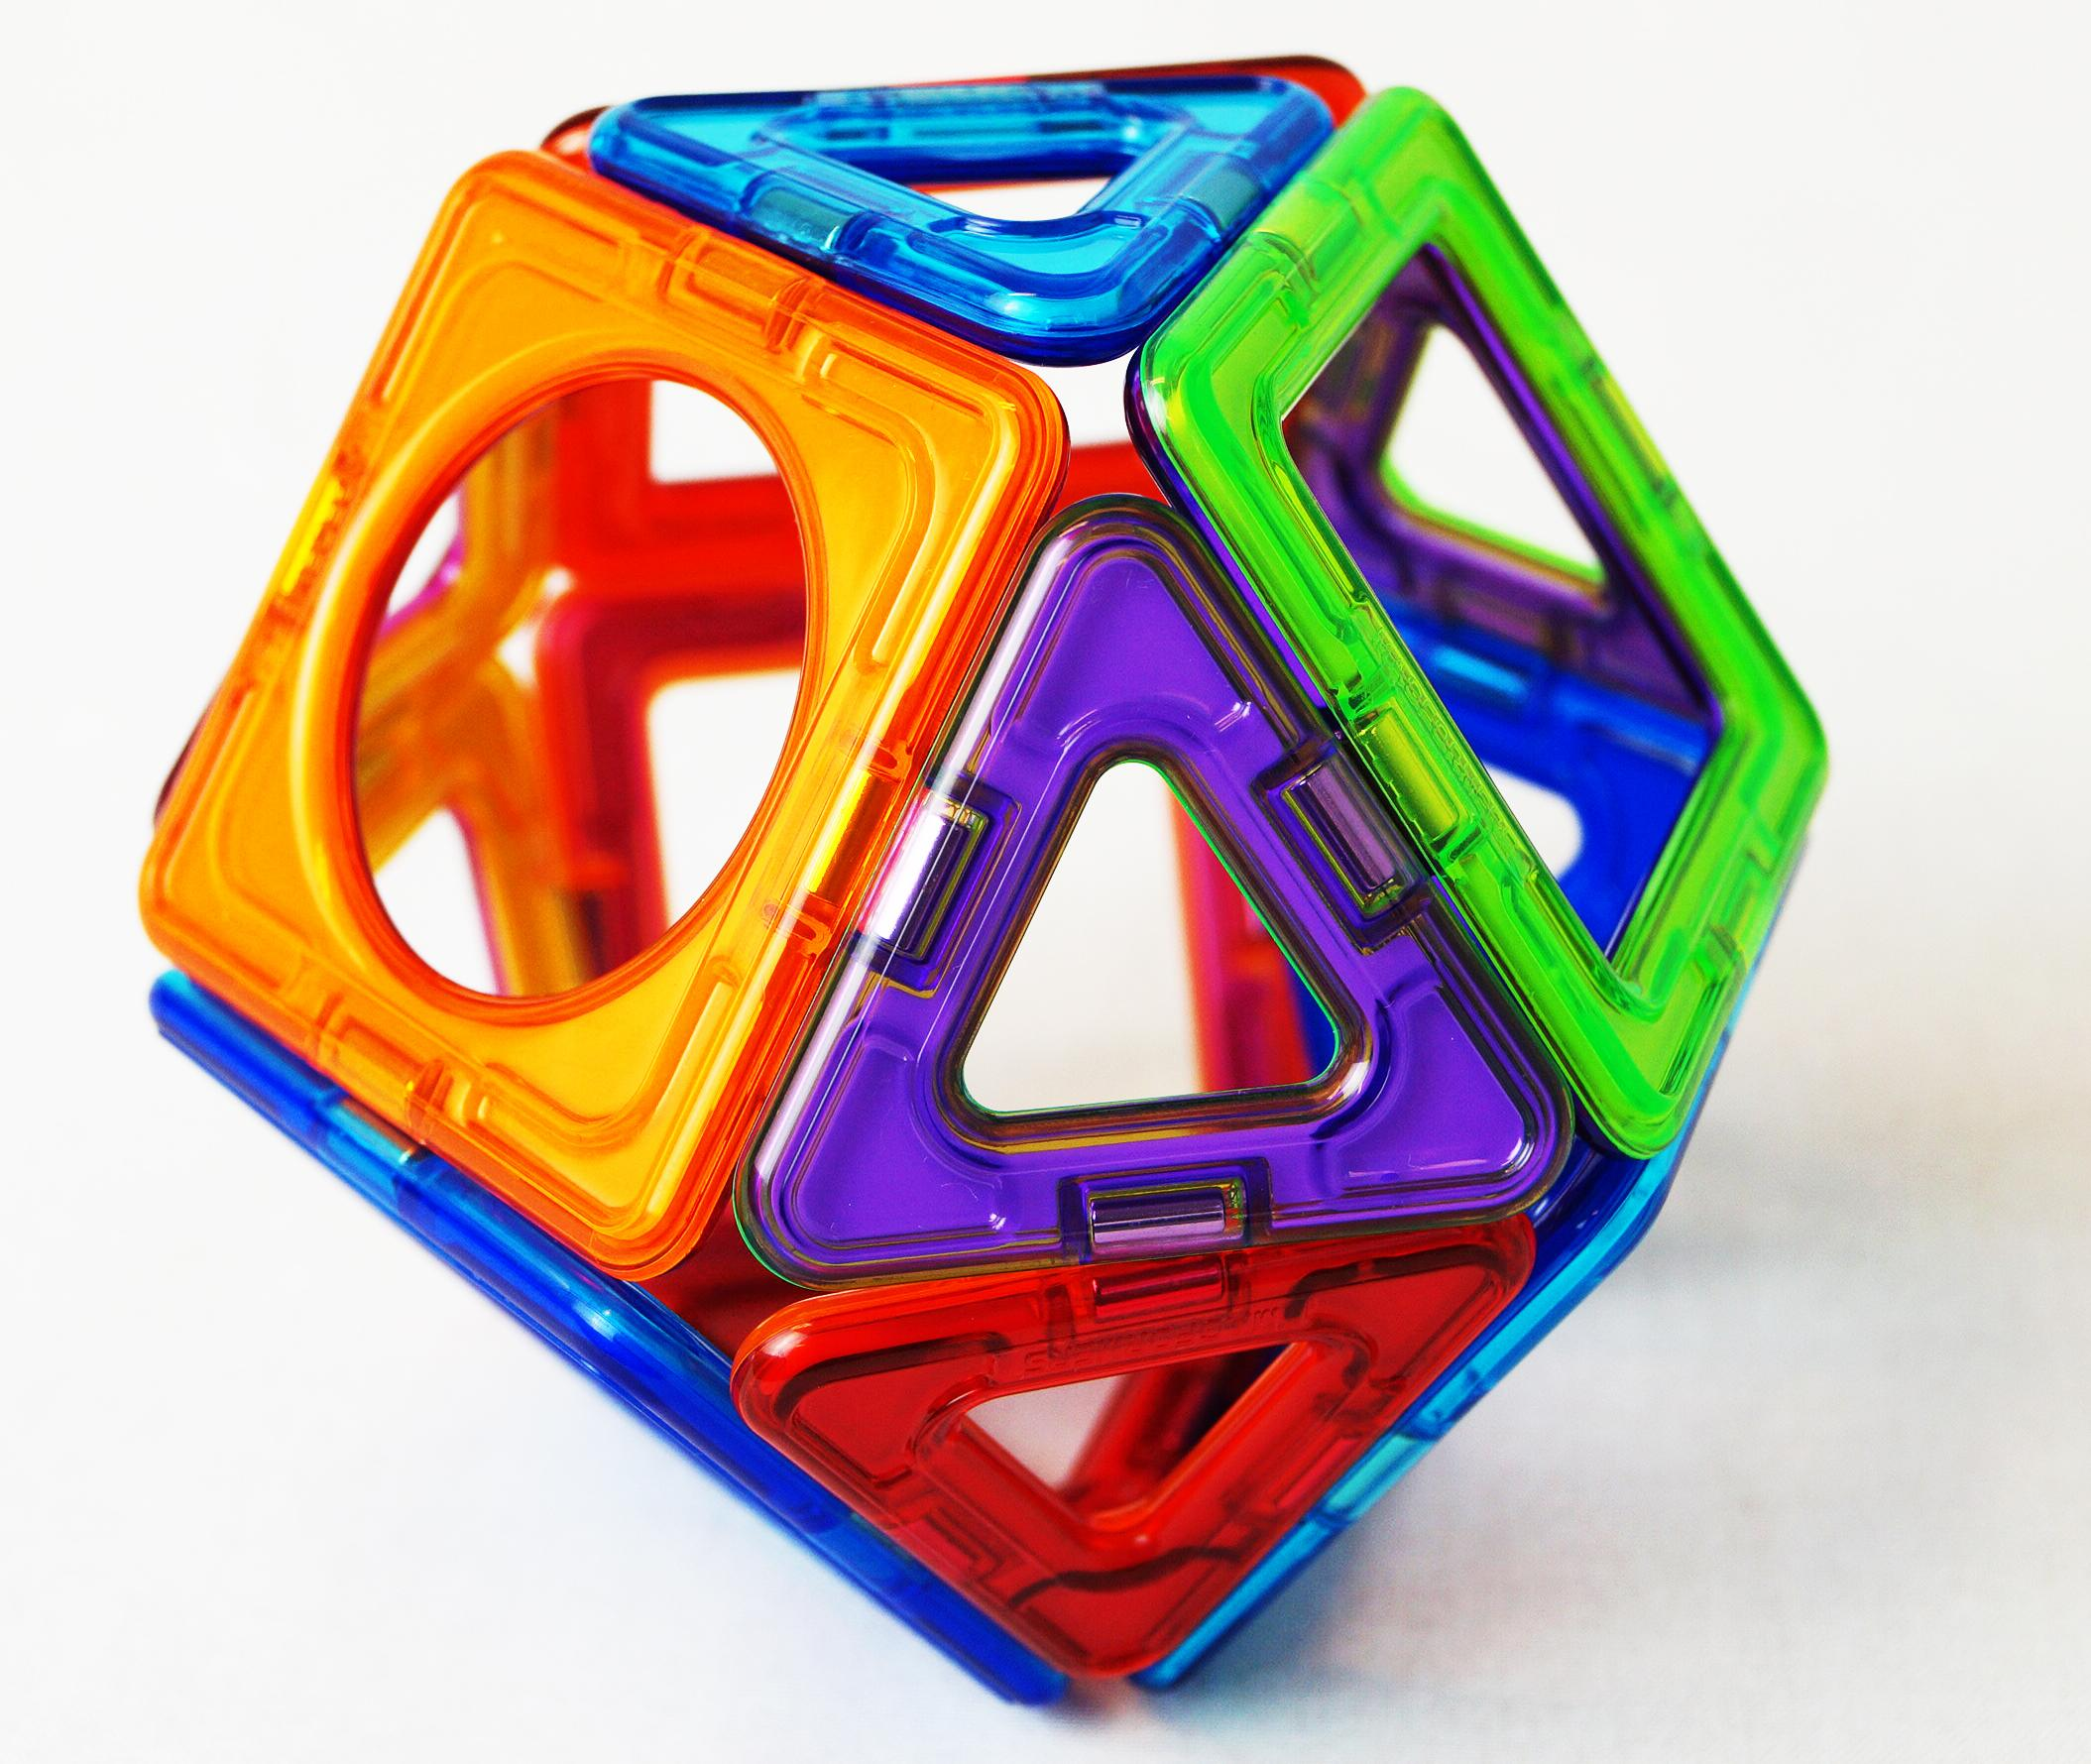 3D shape made from Magformer pieces.